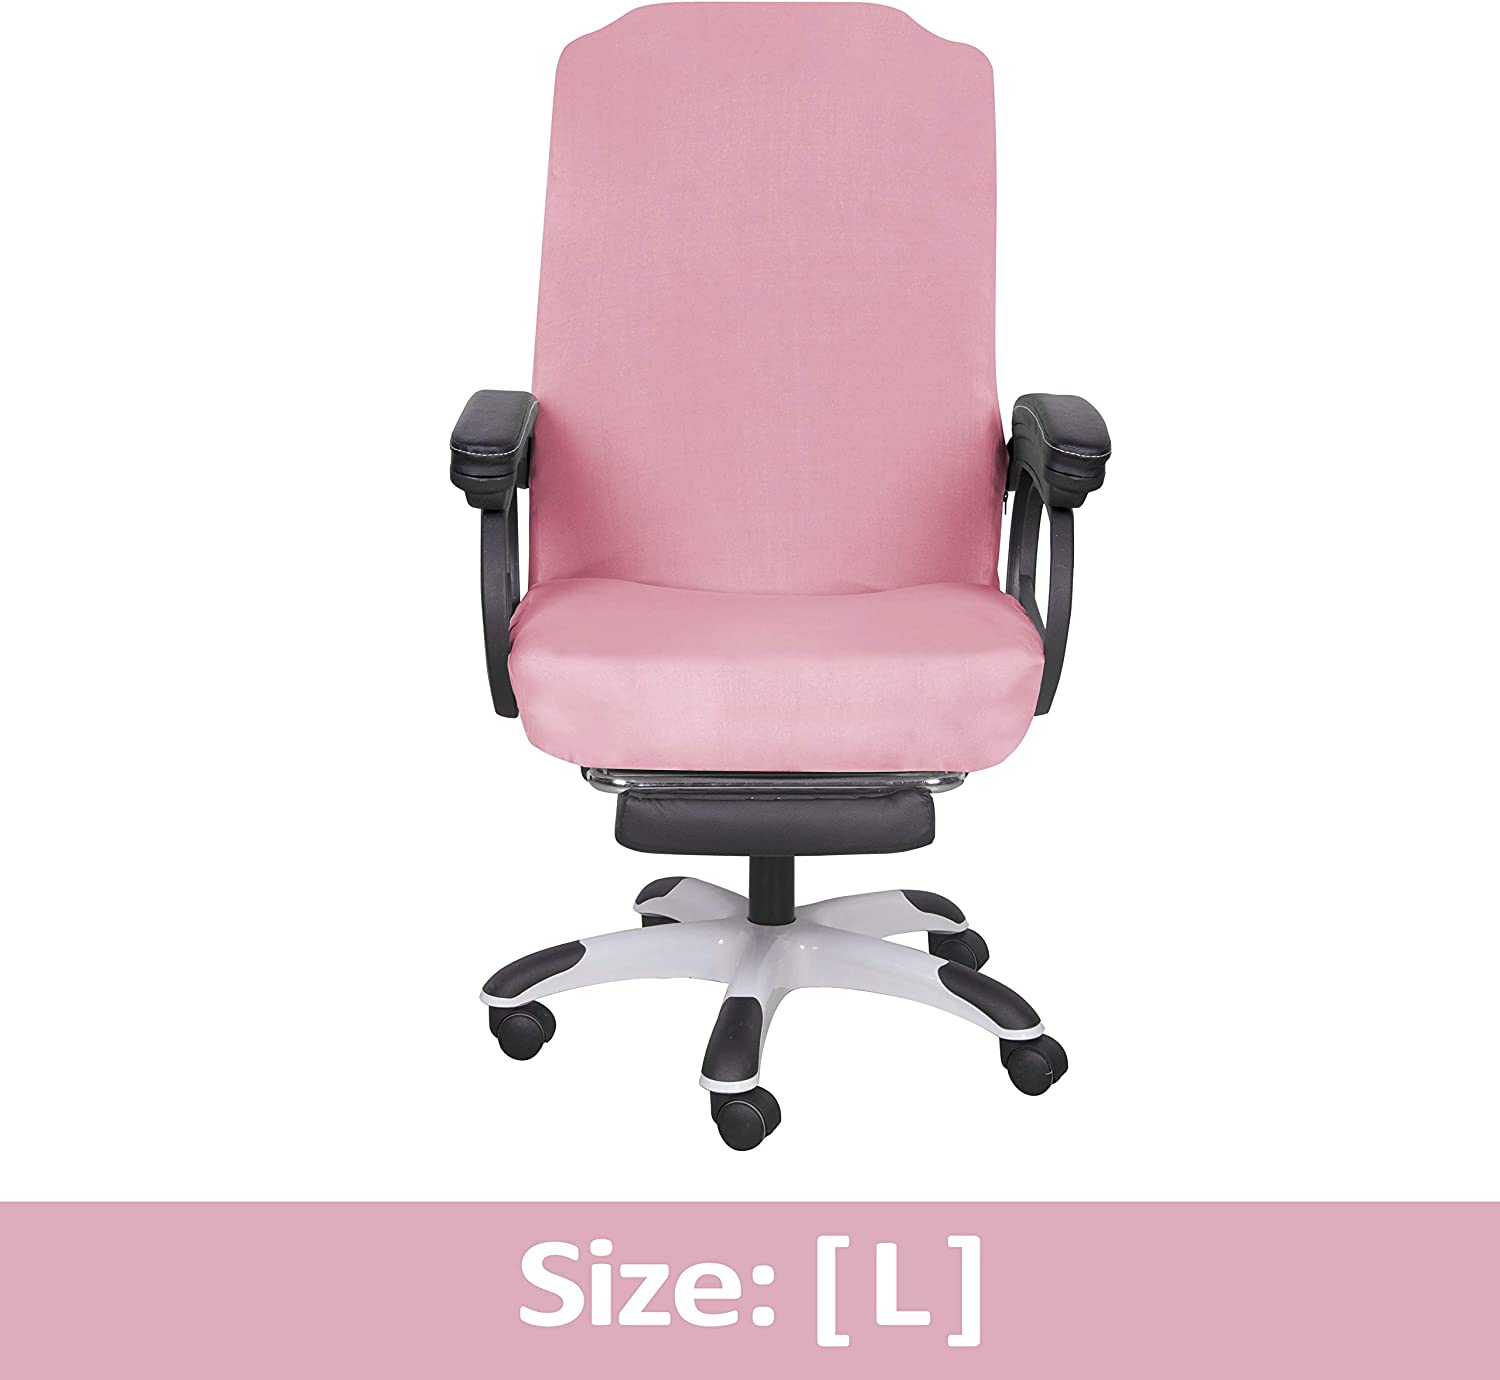 SARAFLORA Pink Office Chair Covers Stretch Washable Computer Chair Slipcovers for Universal Rotating Boss Chair Large Size